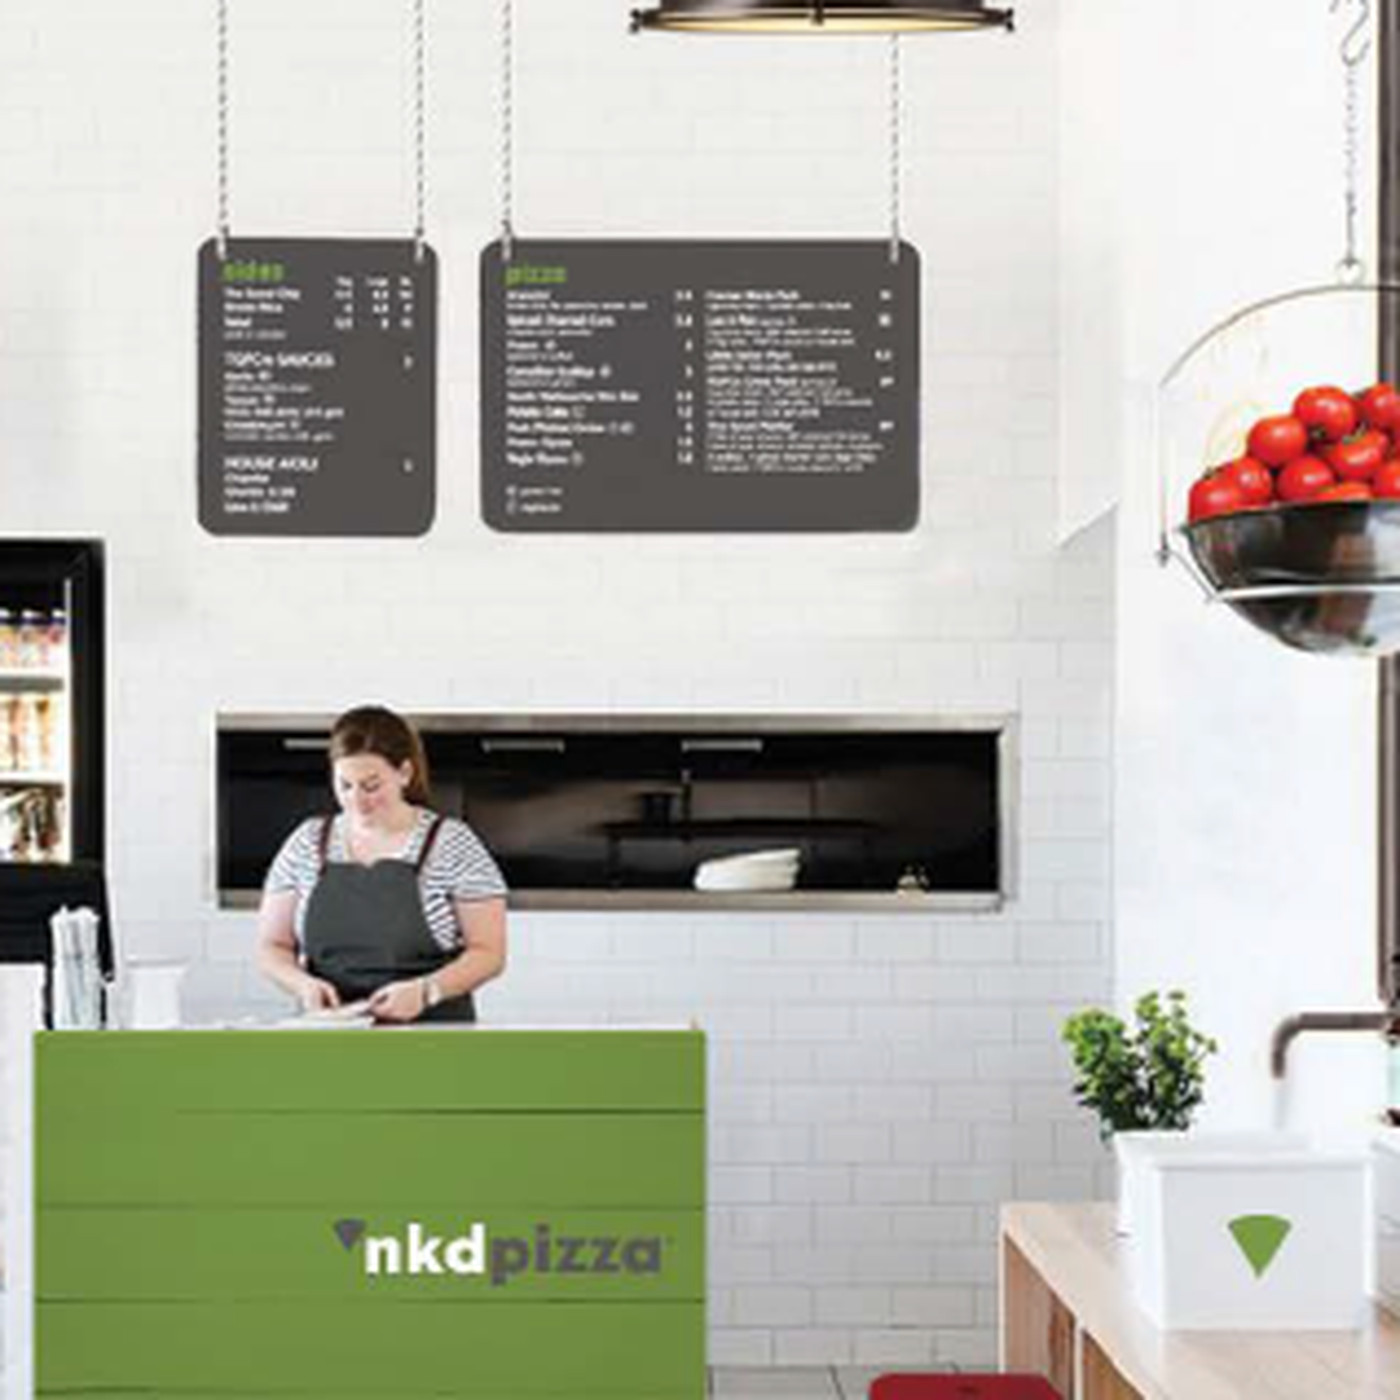 Naked Pizza Reopens as NKD Pizza Today, with Free Pies - Eater DC